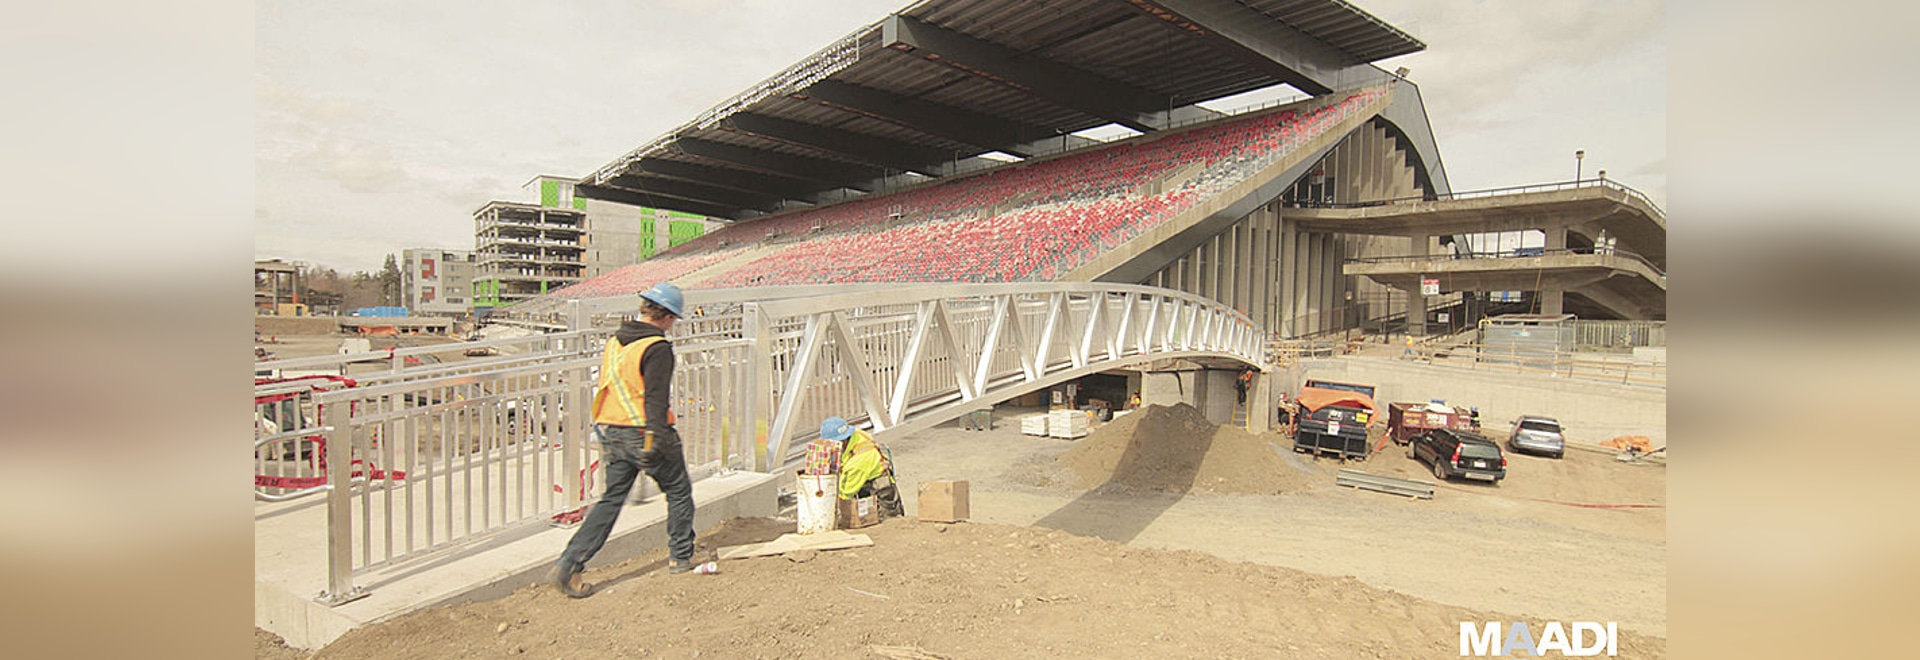 ALUMINUM BRIDGE IS PEDESTRIAN GATEWAY TO TD PLACE STADIUM COMPLEX